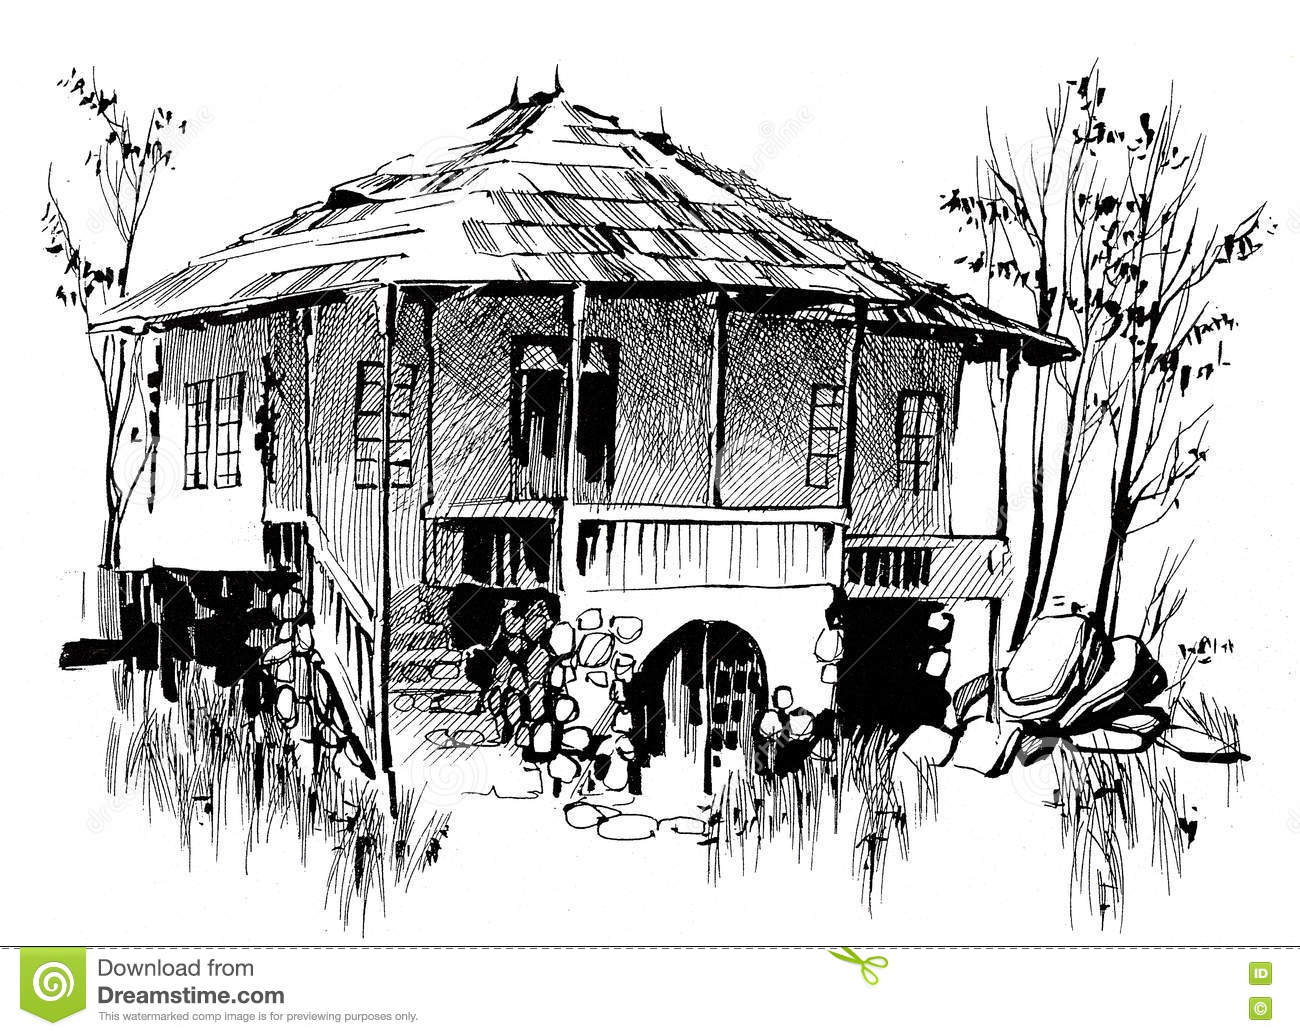 Ink Hand Drawing Countryside Landscape With An Old House Stock ... for Countryside House Drawing  110zmd